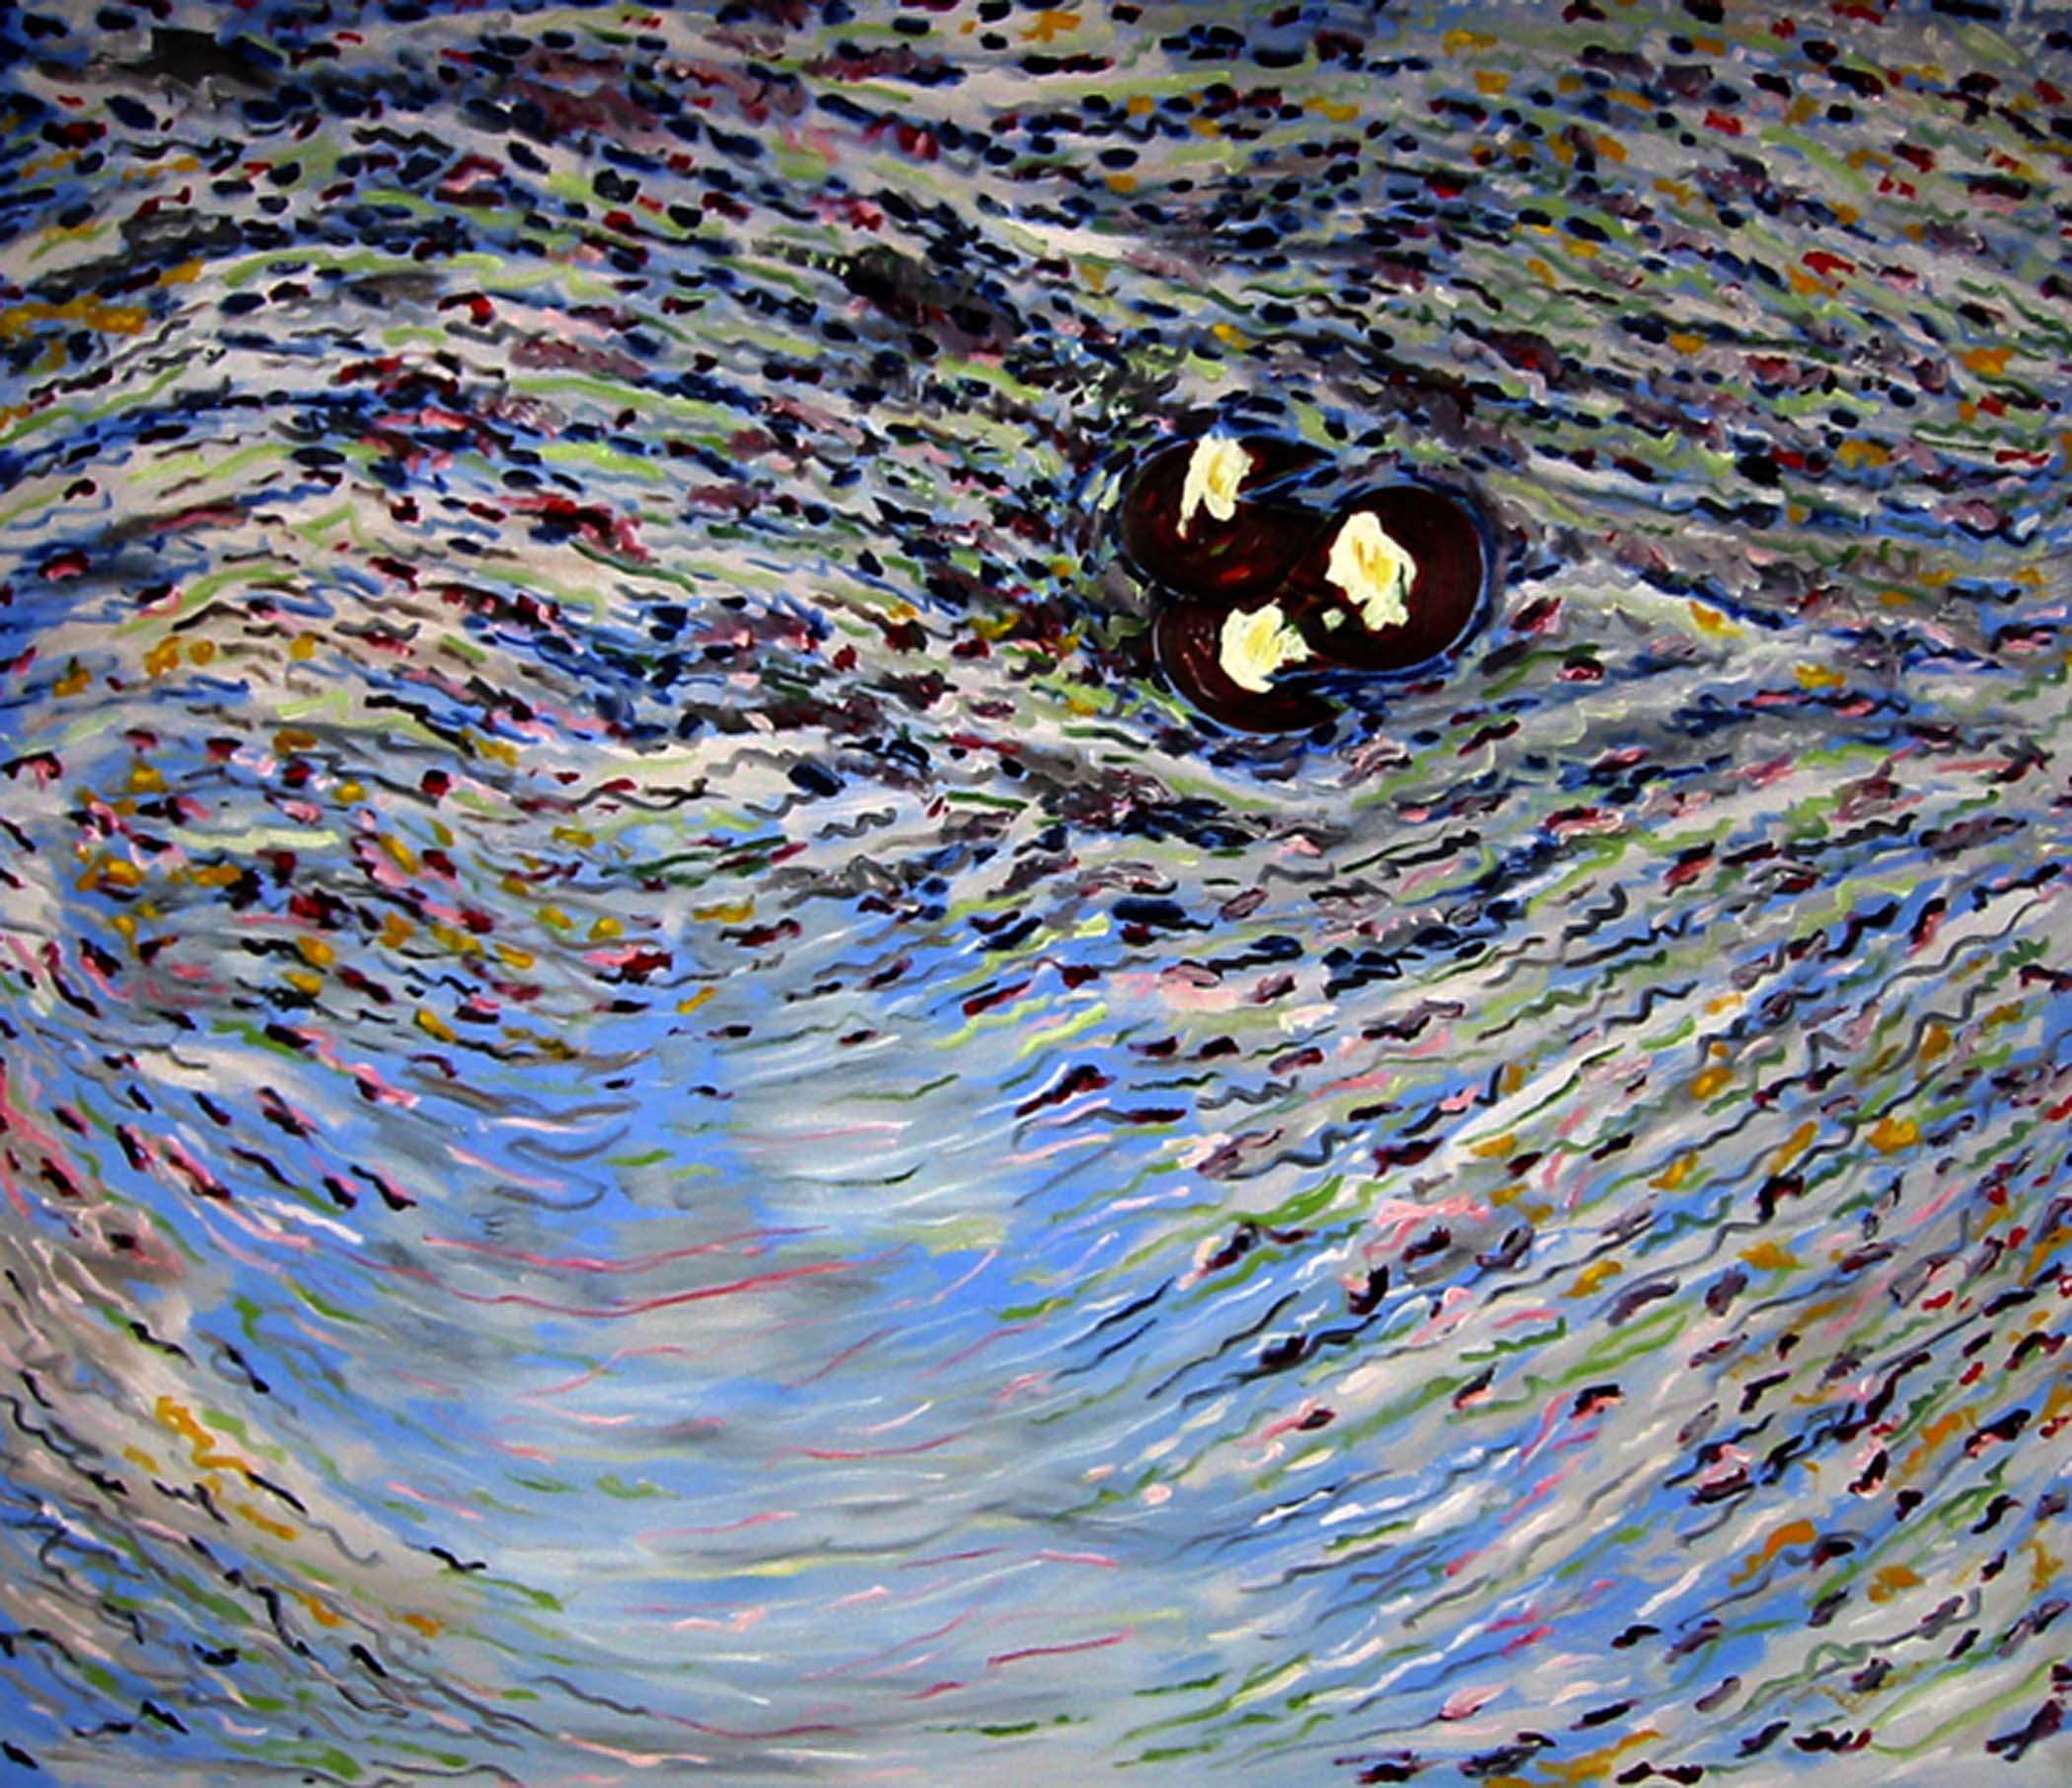 """Reflexions on my pond with waterlilies,  2005, huile sur toile / oil on canvas, 56""""x 48"""", 142 x 122 cm."""